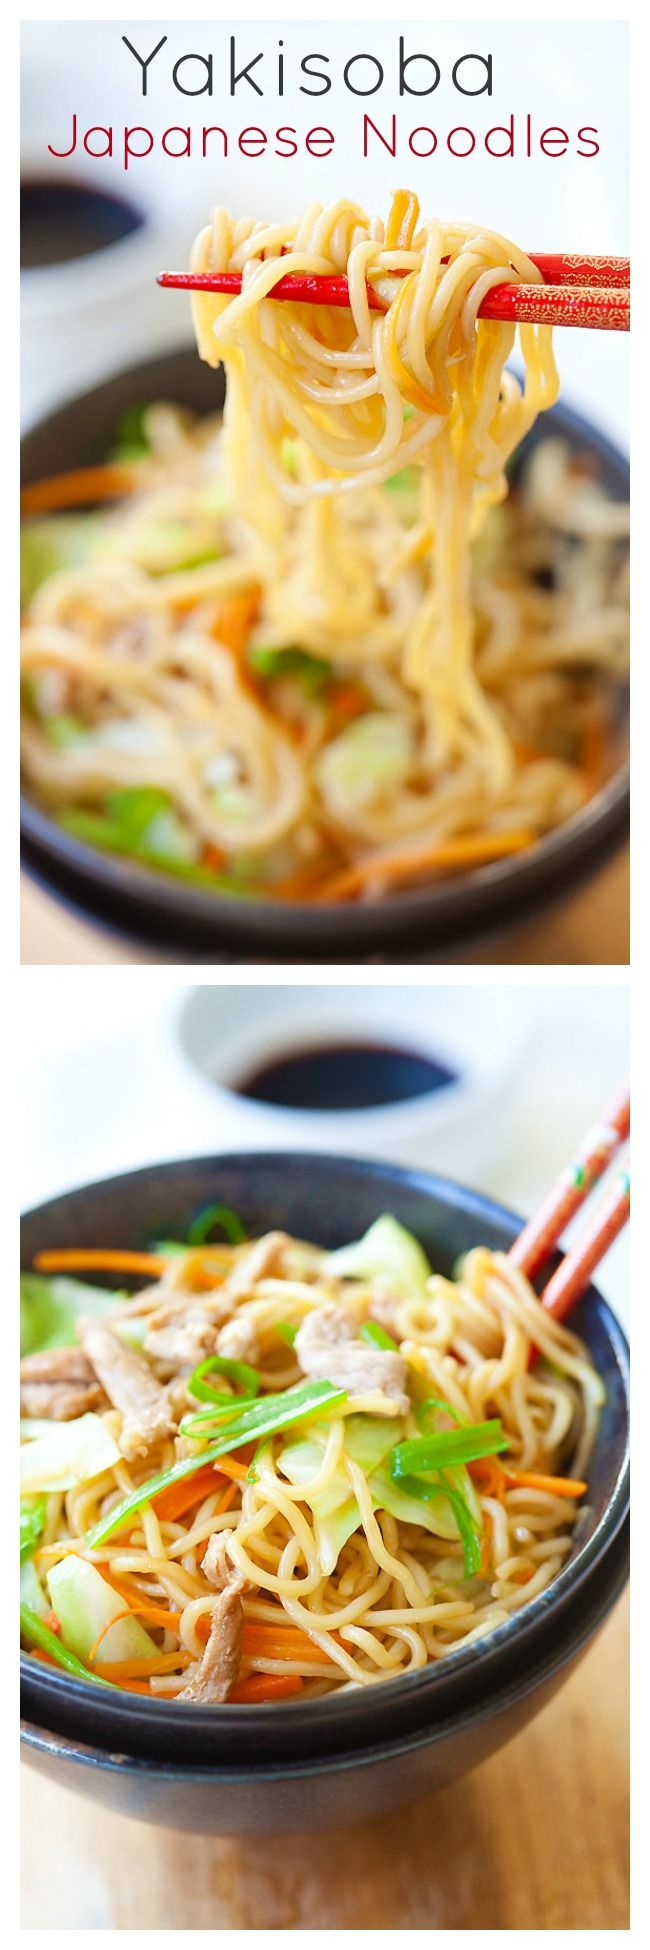 {Japan} Yakisoba or Japanese fried noodles is a popular dish. Inspired by Chinese fried noodles, this yakisoba recipe is made with cabbage, carrot, and pork | rasamalaysia.com